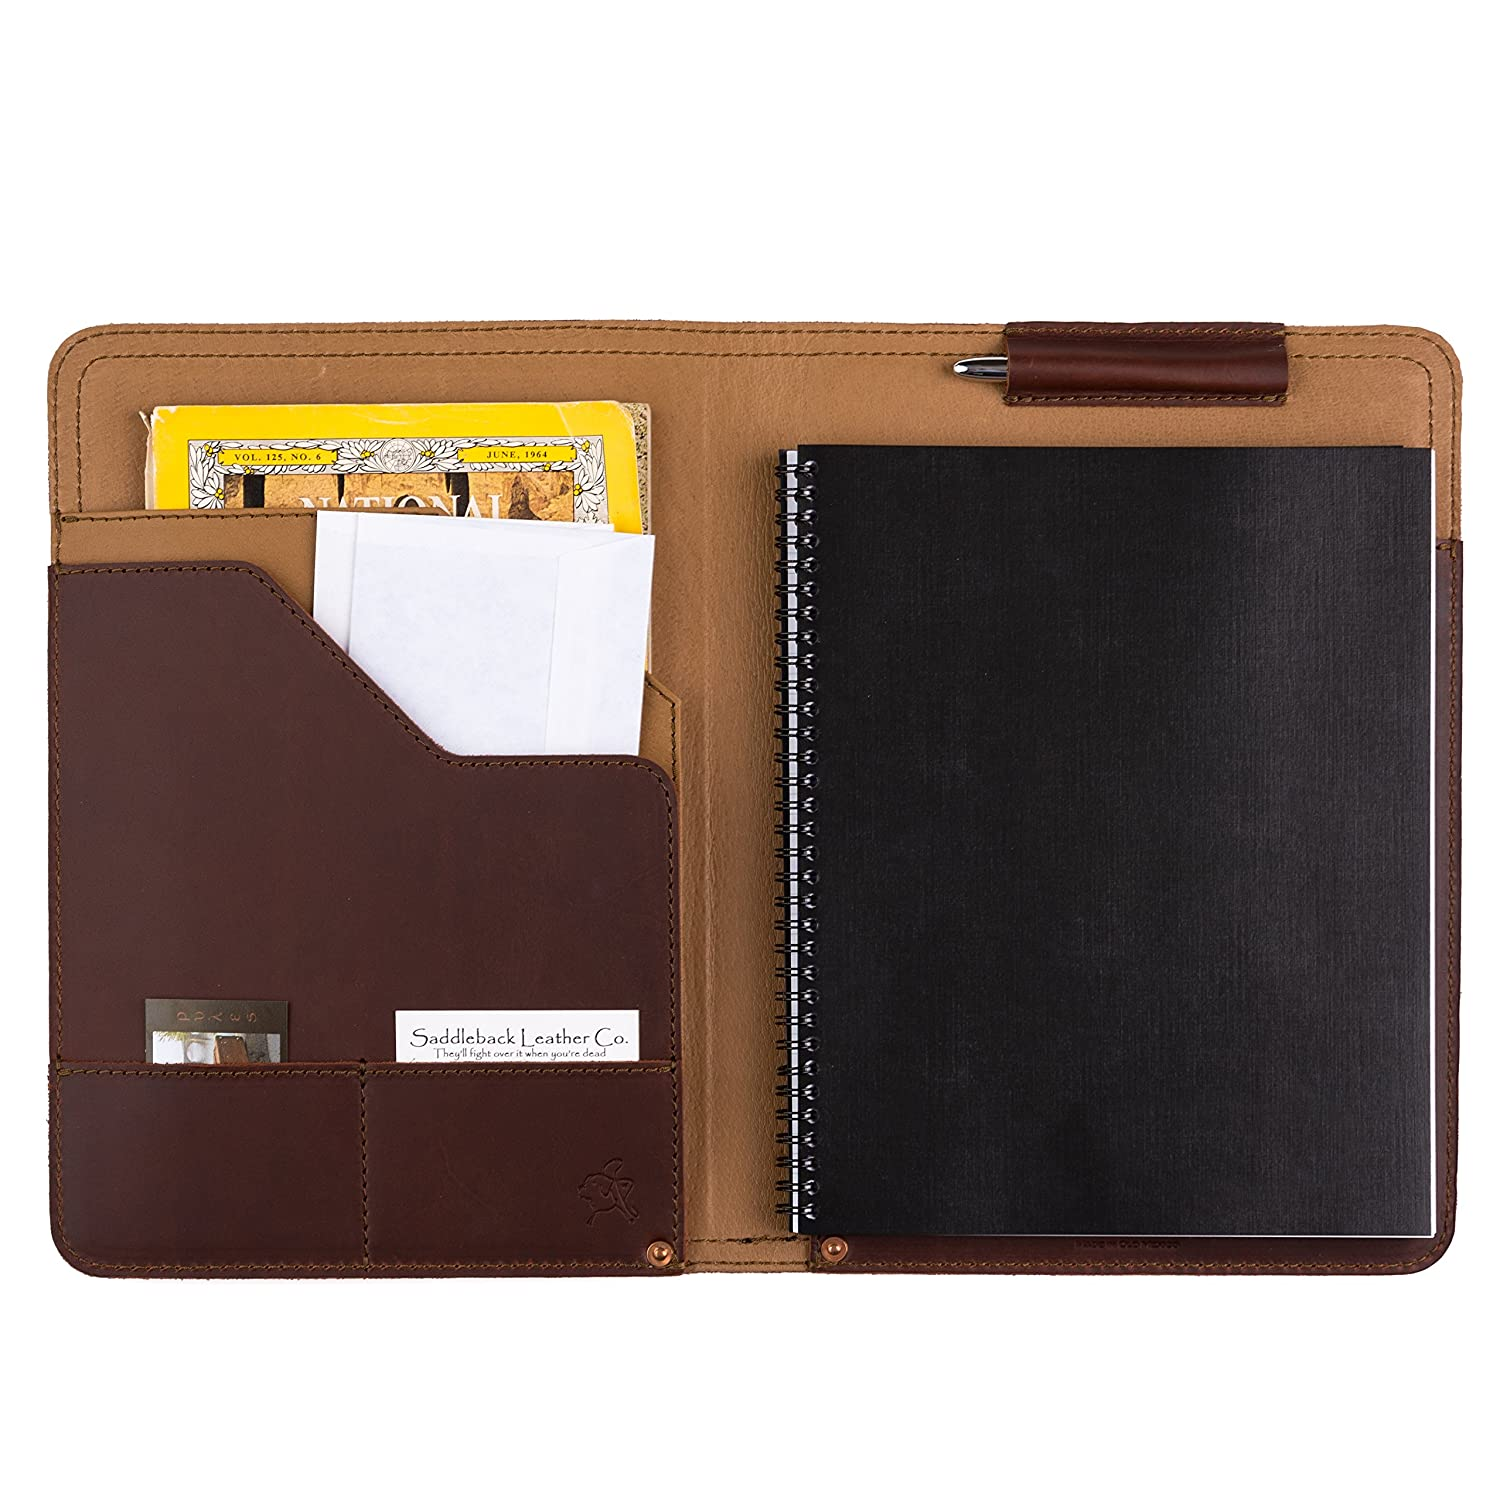 Merveilleux Business Notepad Holder Full Grain Leather Pad Folio For Legal Pads,  Tablets And Business Cards Includes 100 Year Warranty : Office Products